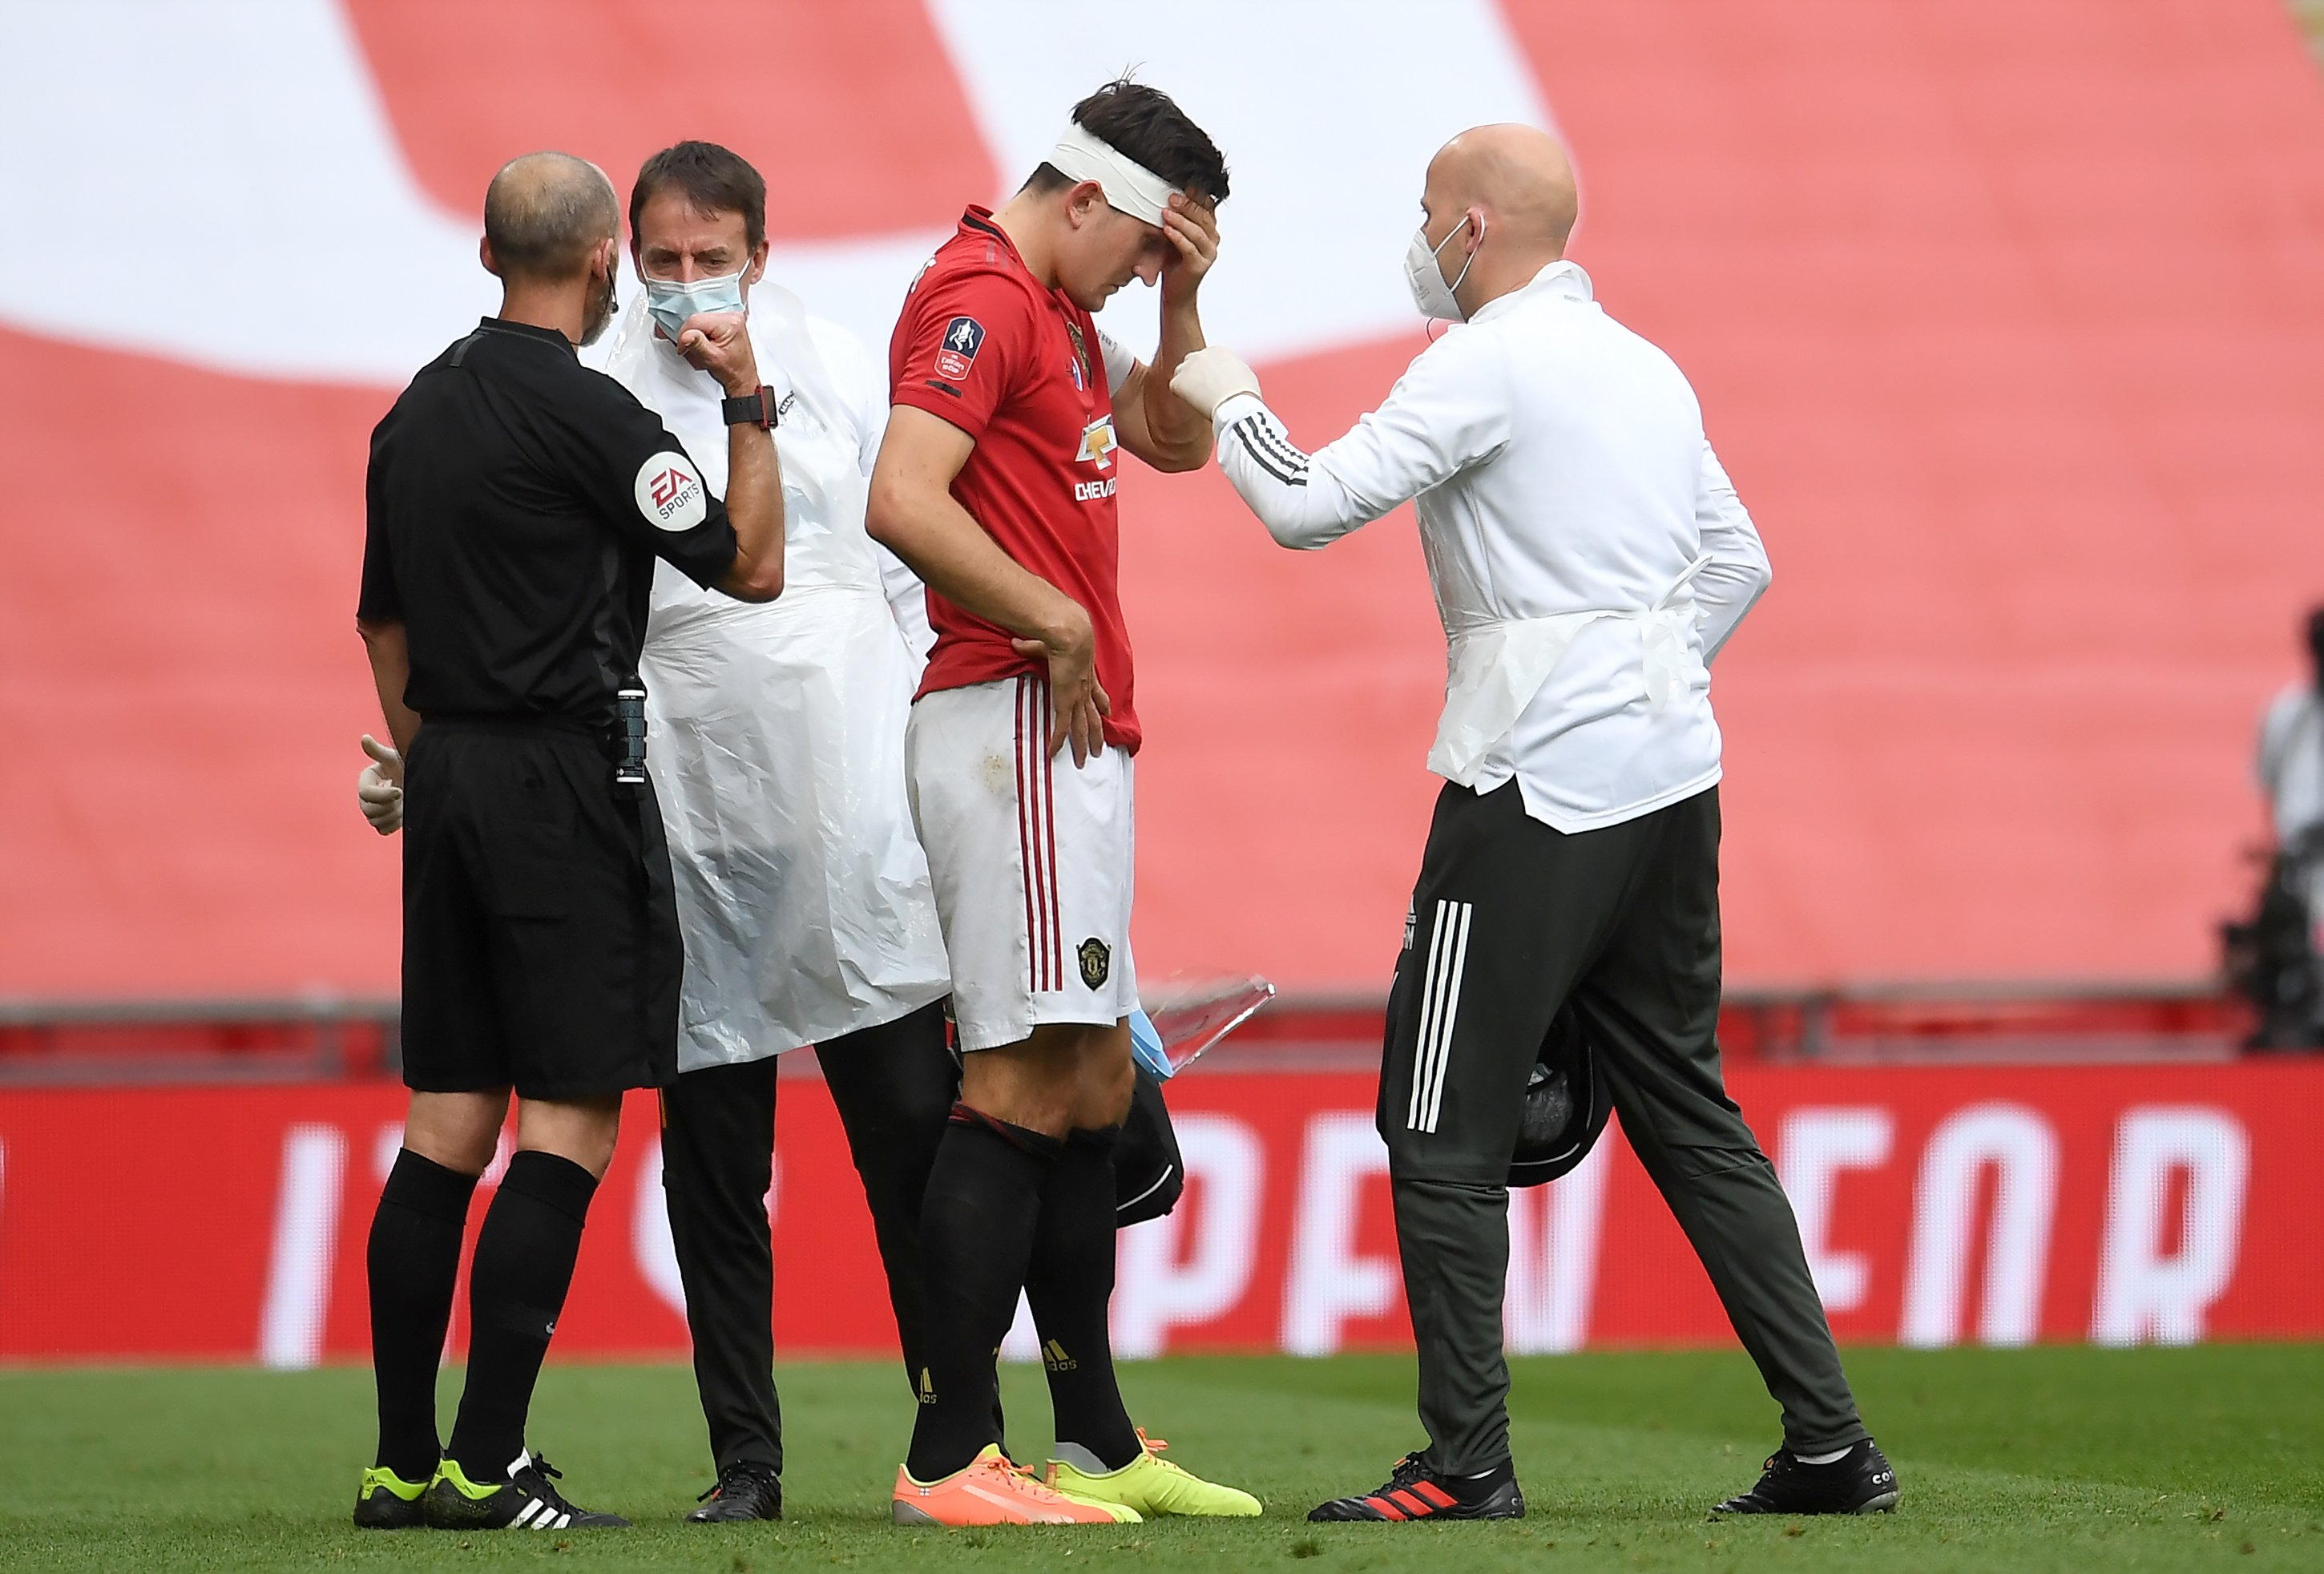 Football Association eager to trial concussion substitutes in FA Cup this season